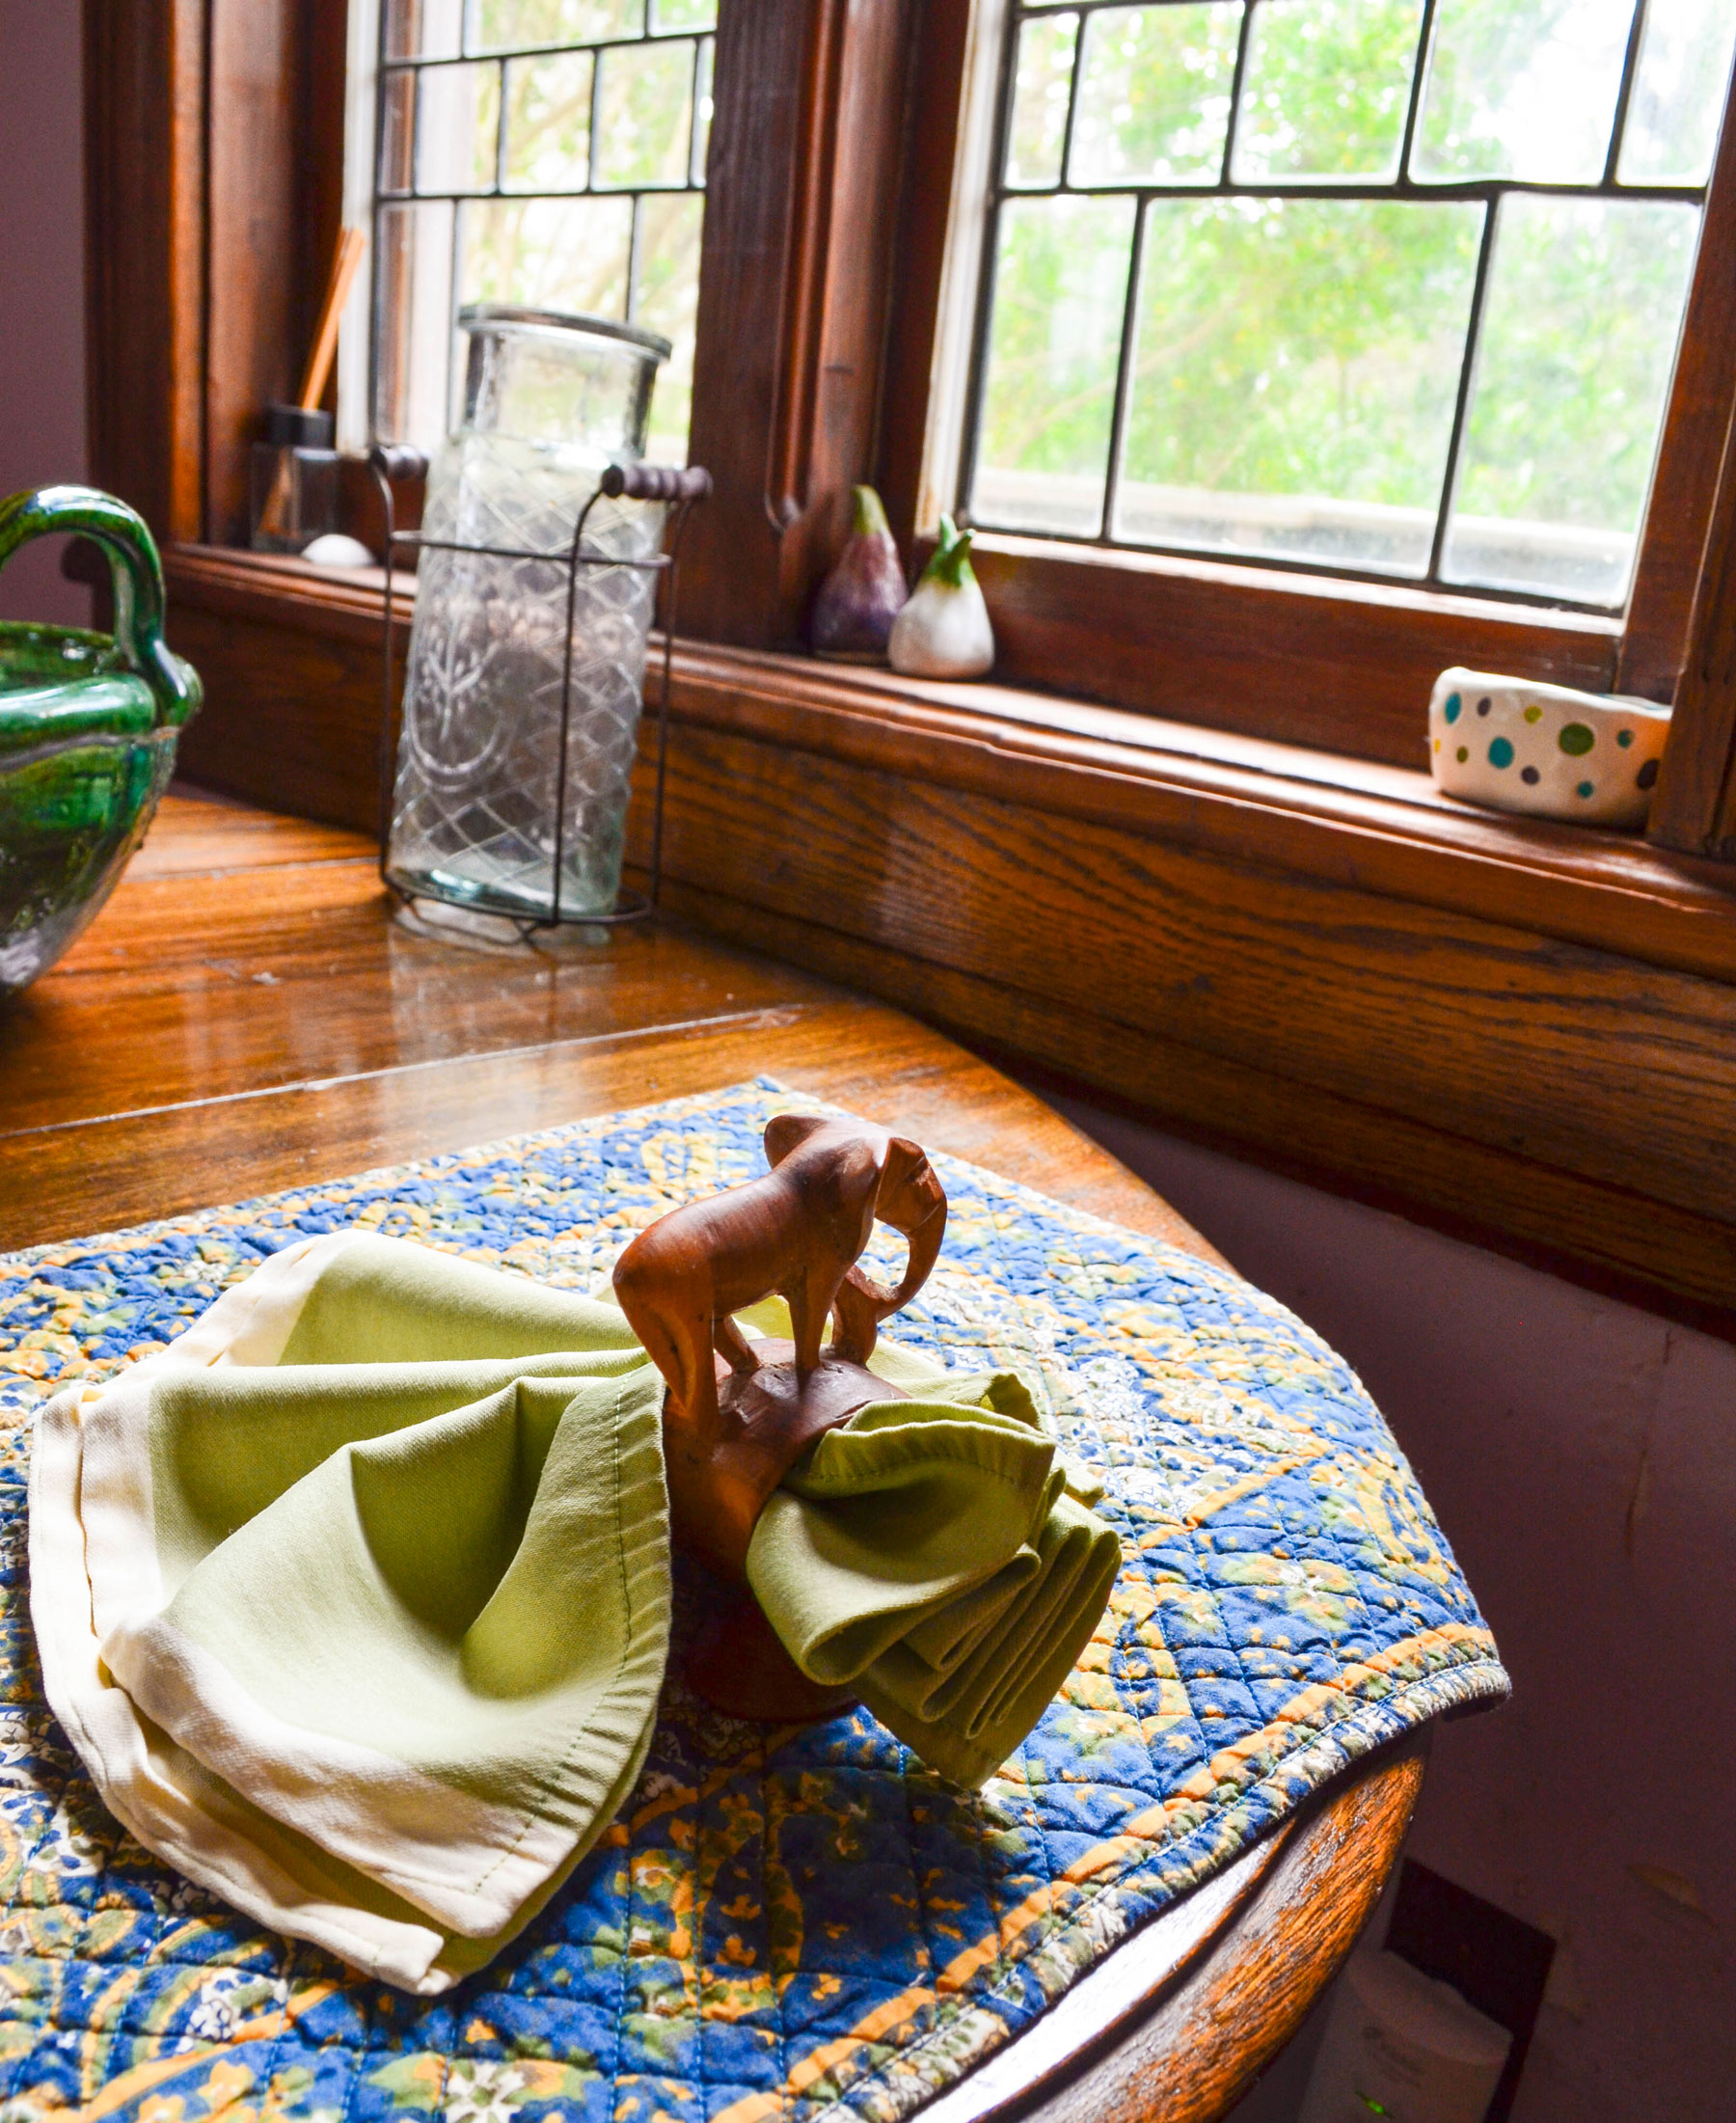 a wooden elephant napkin ring on the table at the Bridge Cottage at B. Bryan Preserve in Point Arena on the Mendocino Coast